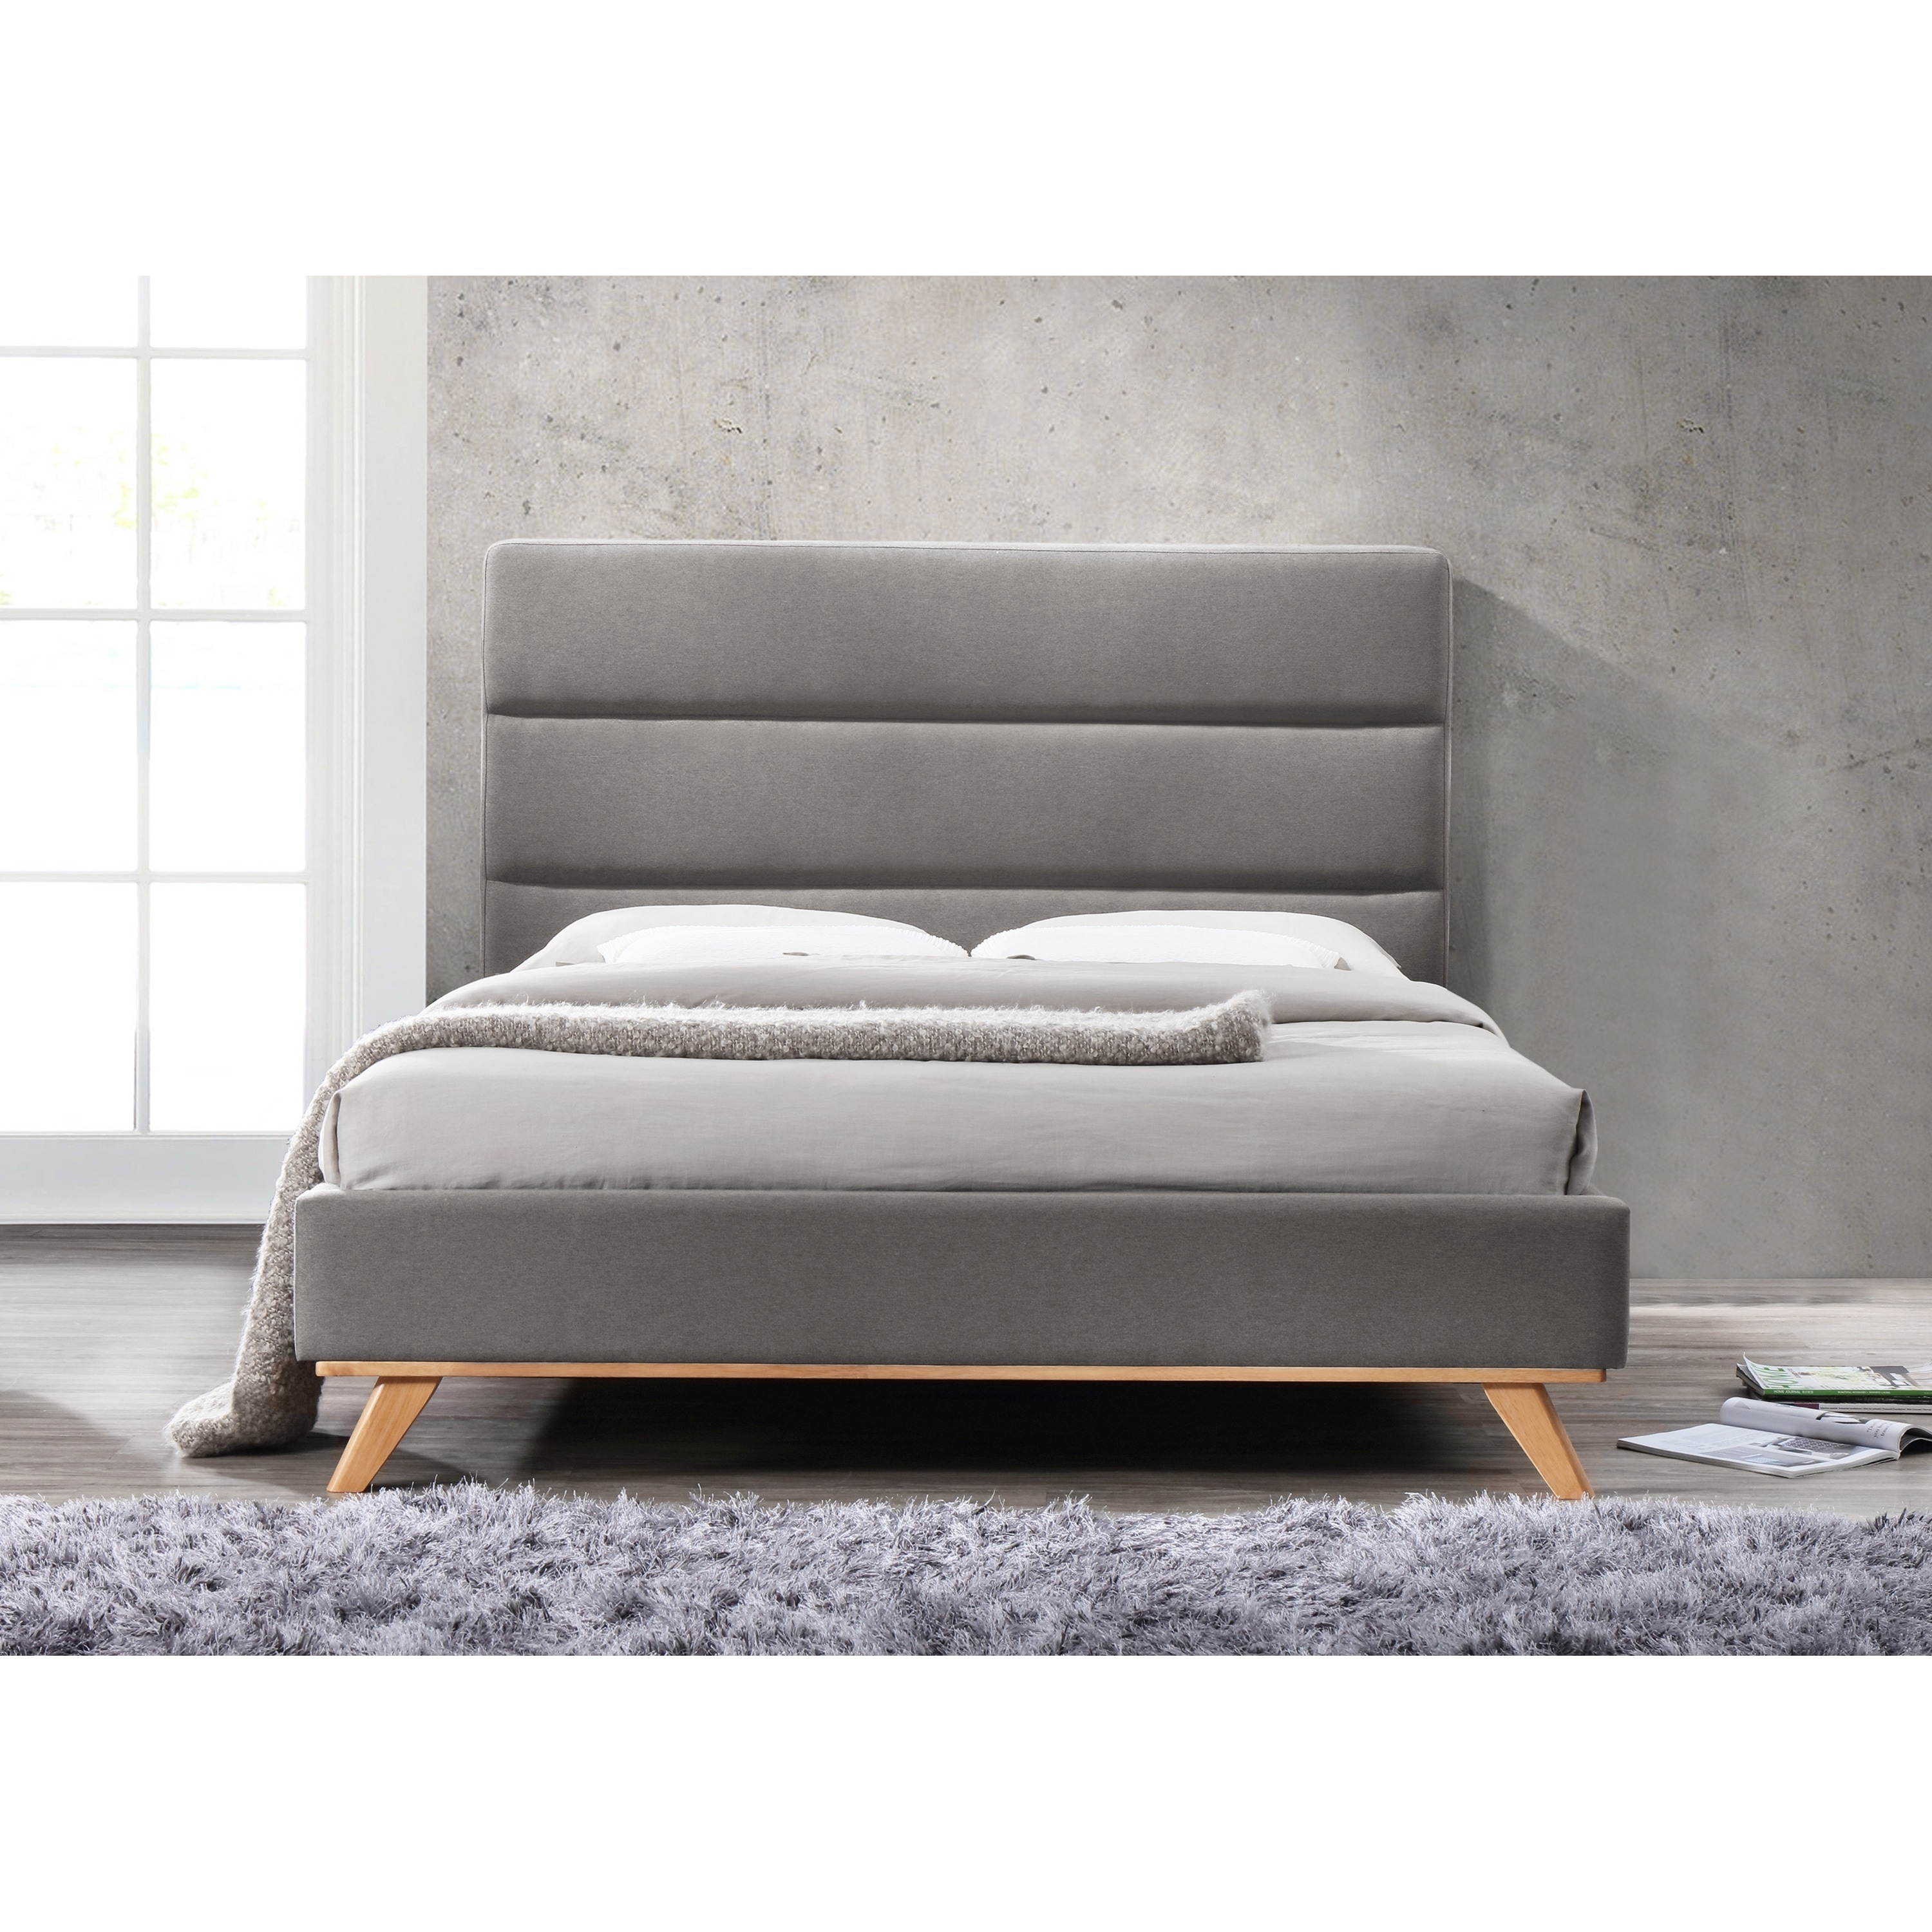 Omax Decor Kennedy Upholstered Platform Bed Queen - Free Shipping On ...